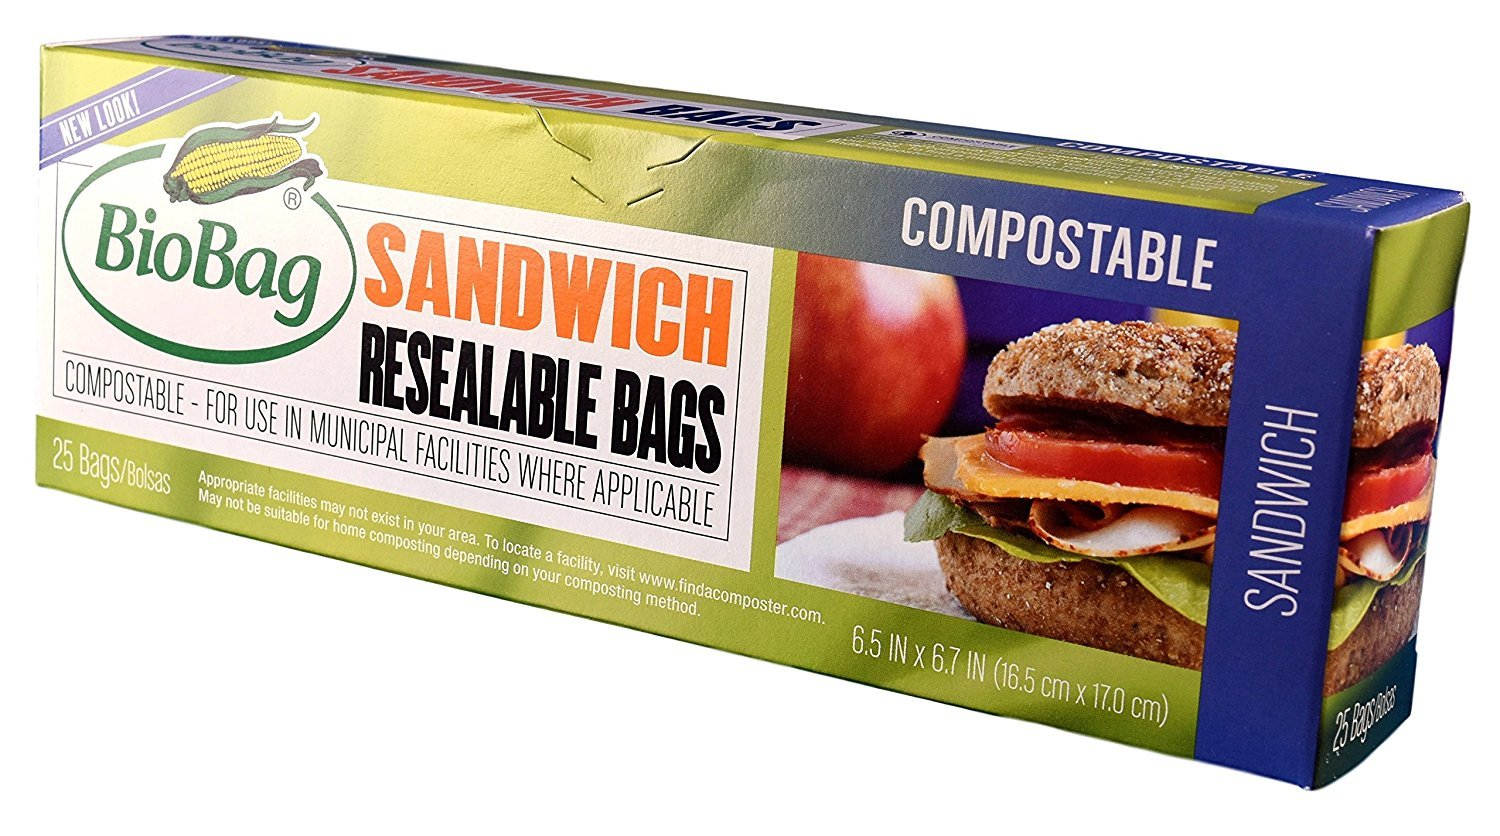 BioBag - 25 Count Resealable Sandwich Bags, Pack of 4